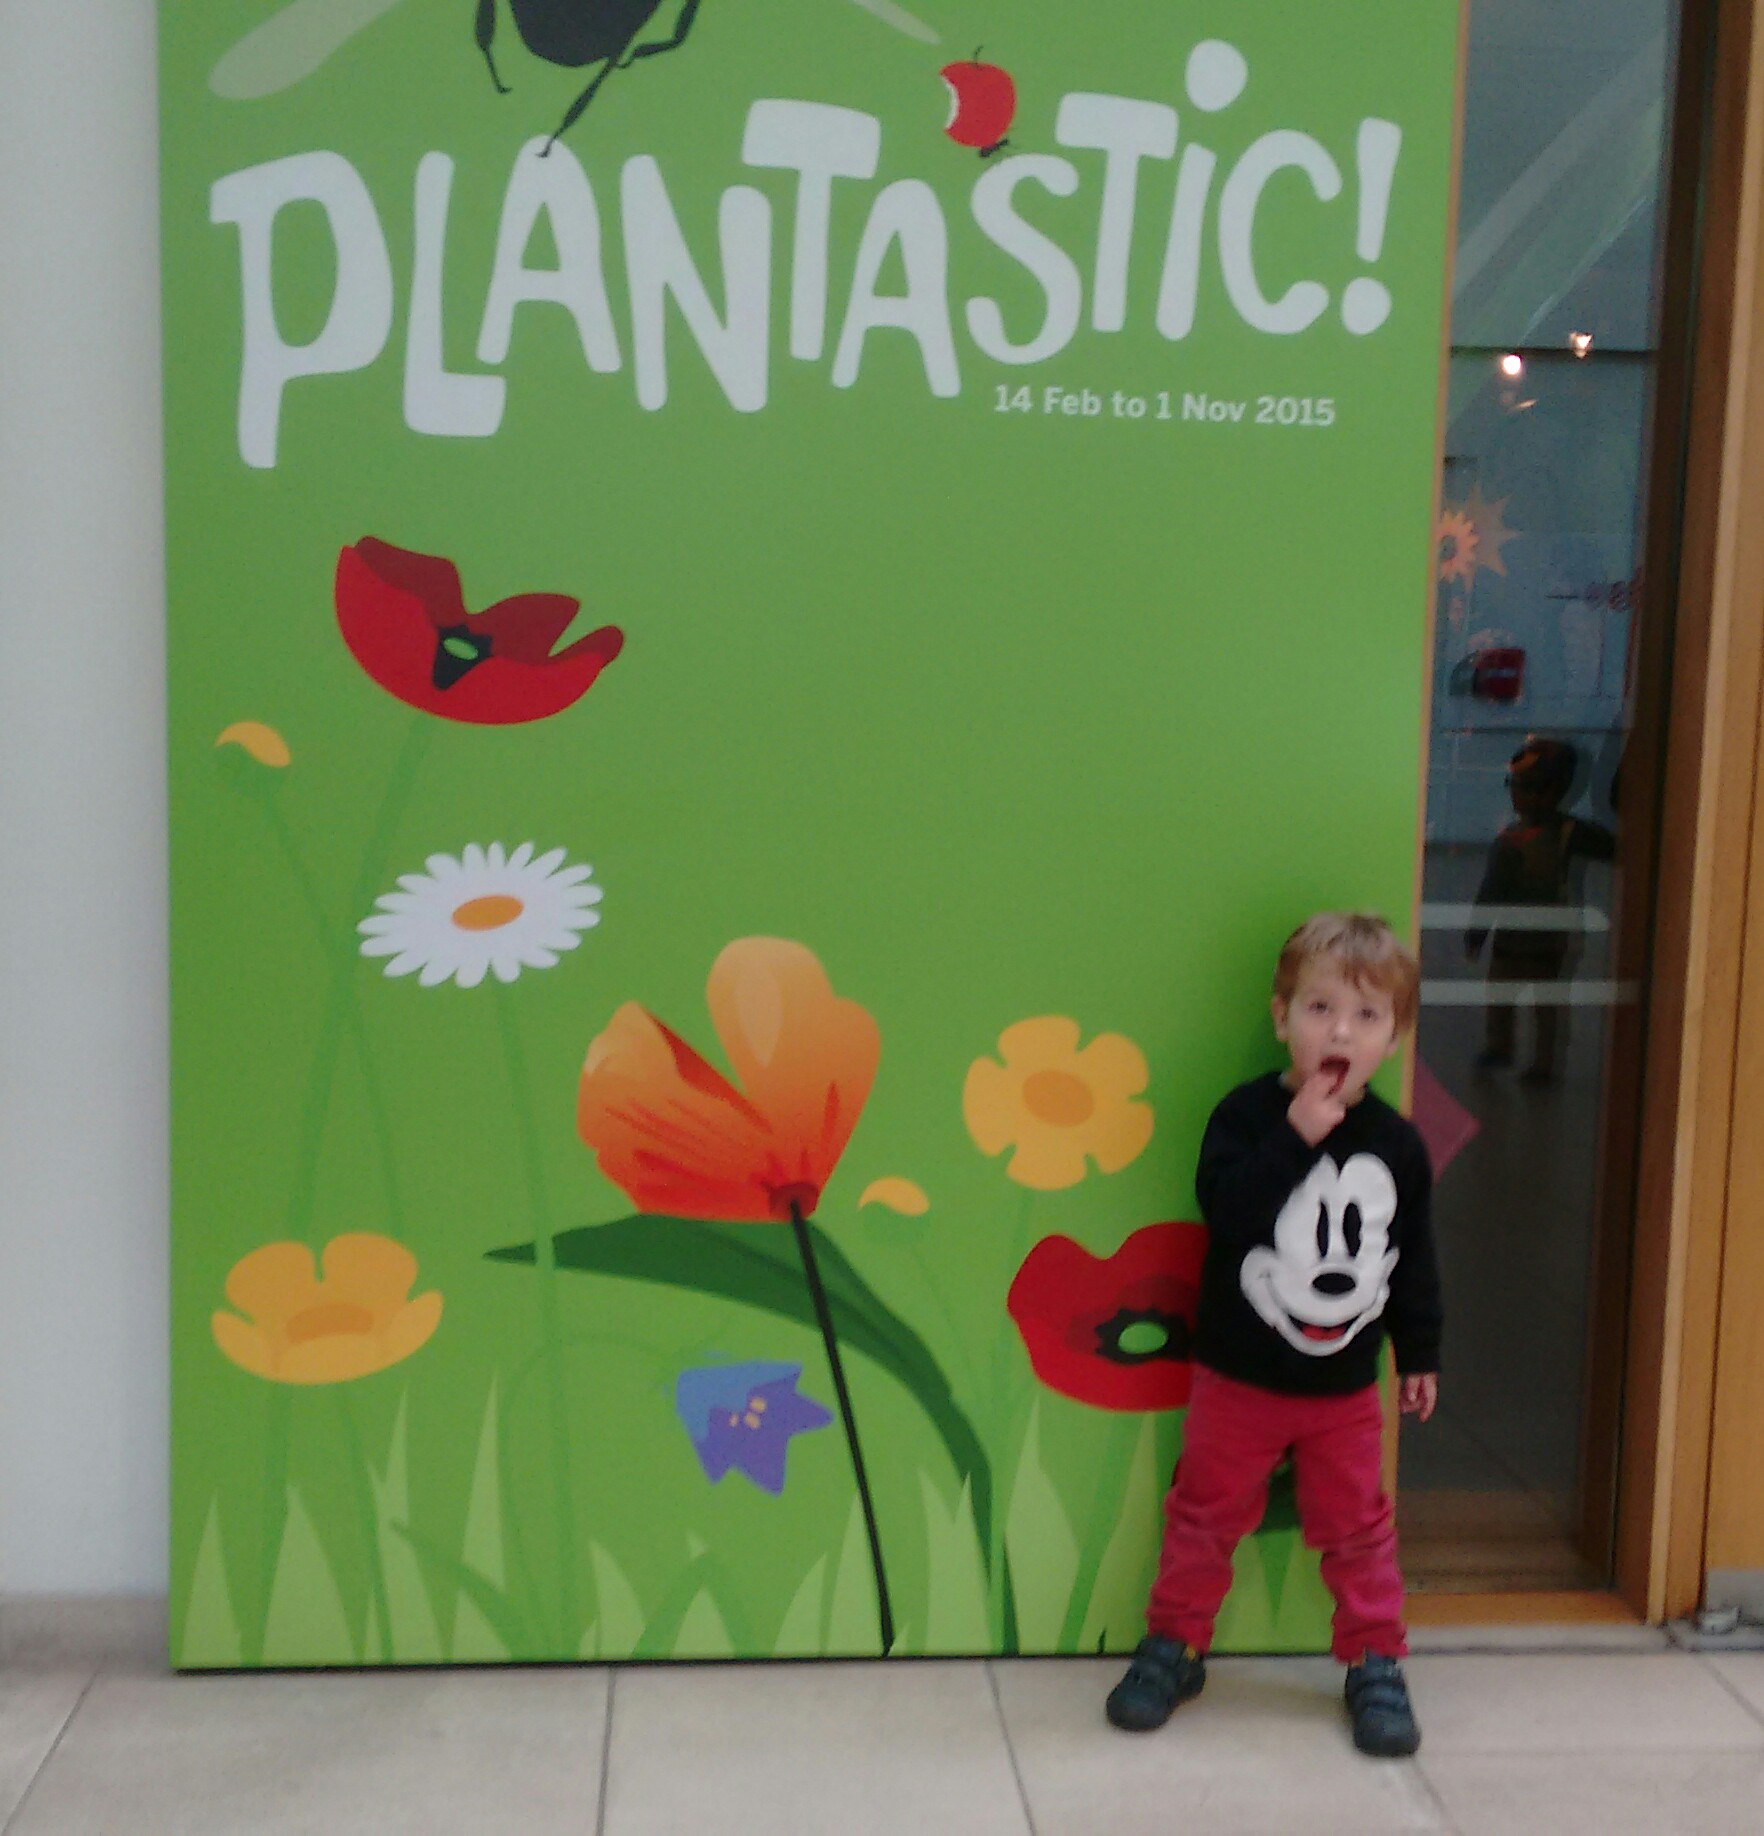 Toddler standing outside sign for Plantastic